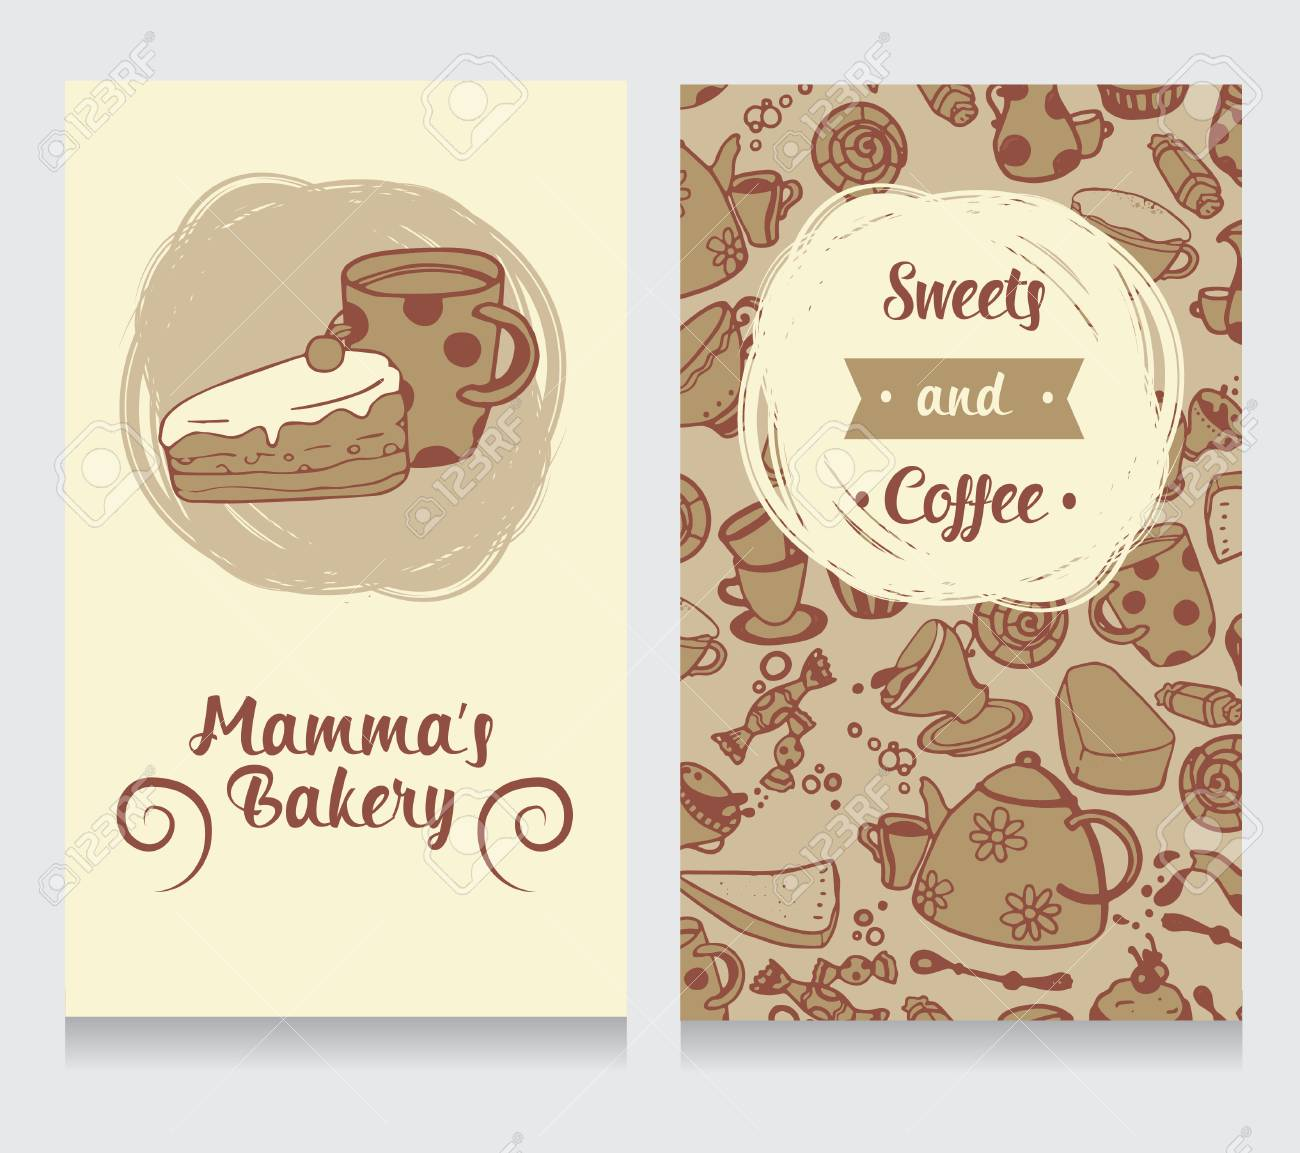 Cute Funny Business Card For Bakery, Vector Illustration Royalty ...